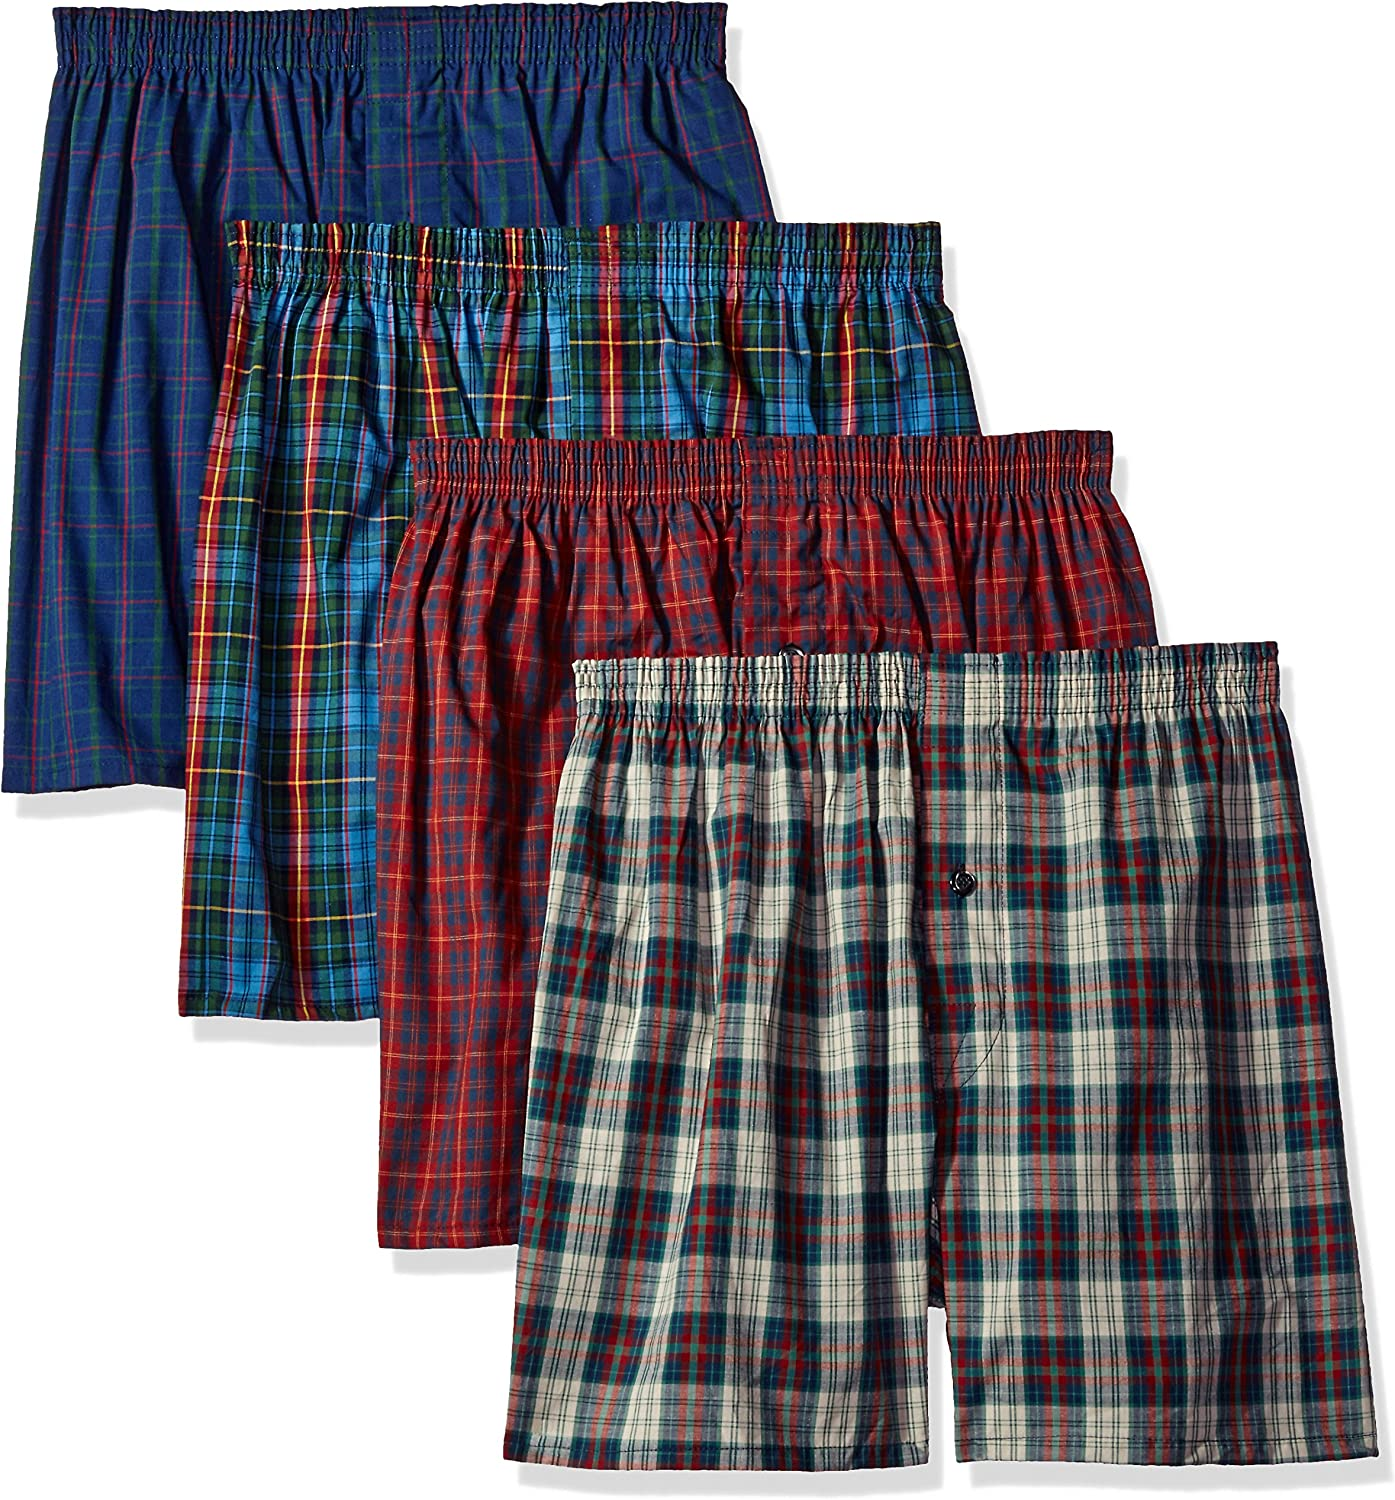 Fruit of the Loom Men's Premium Woven Boxer (4 Pack)